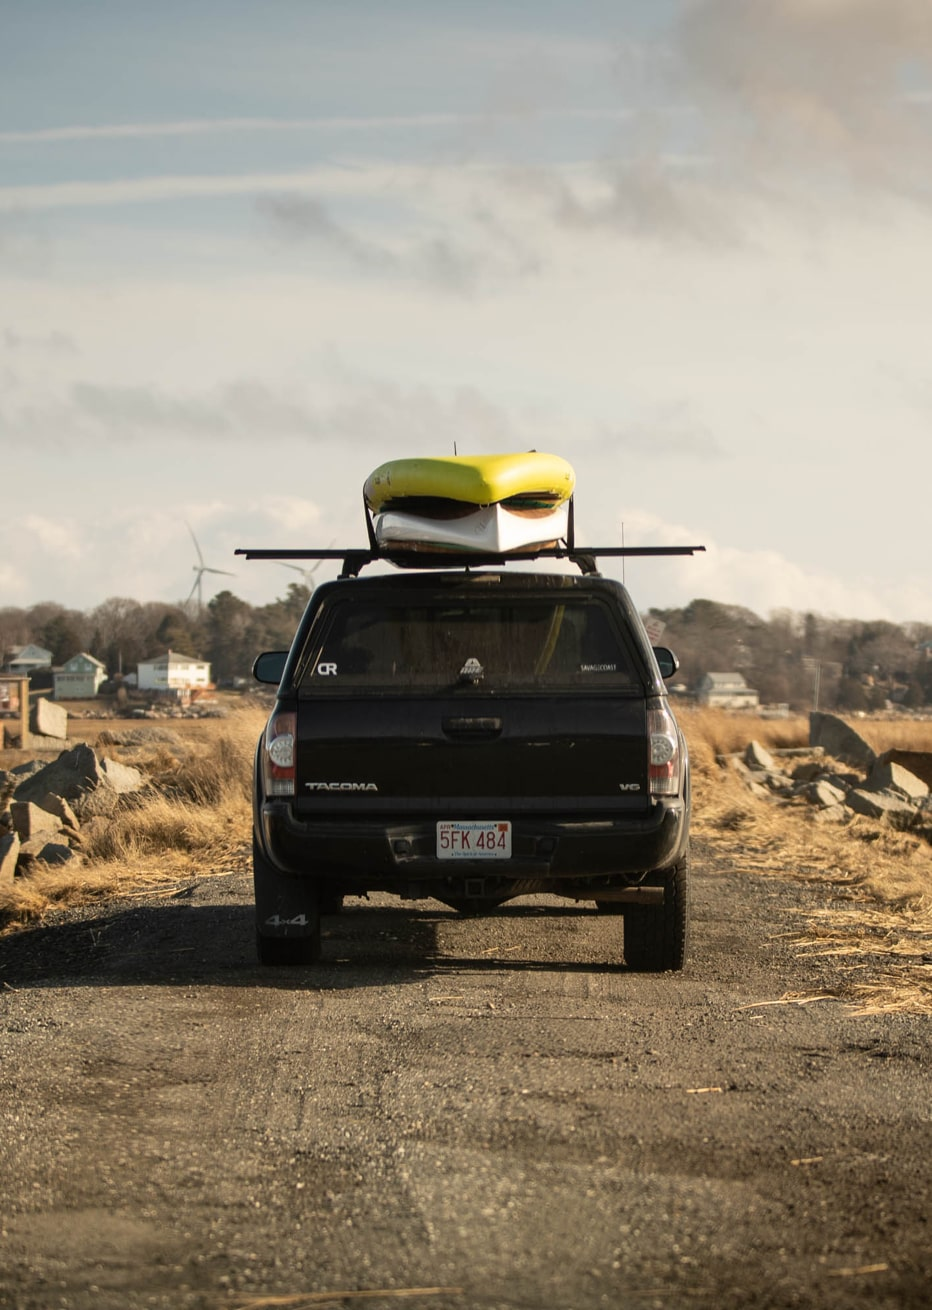 Toyota Tacoma driving with BOTE Paddle boards on roof